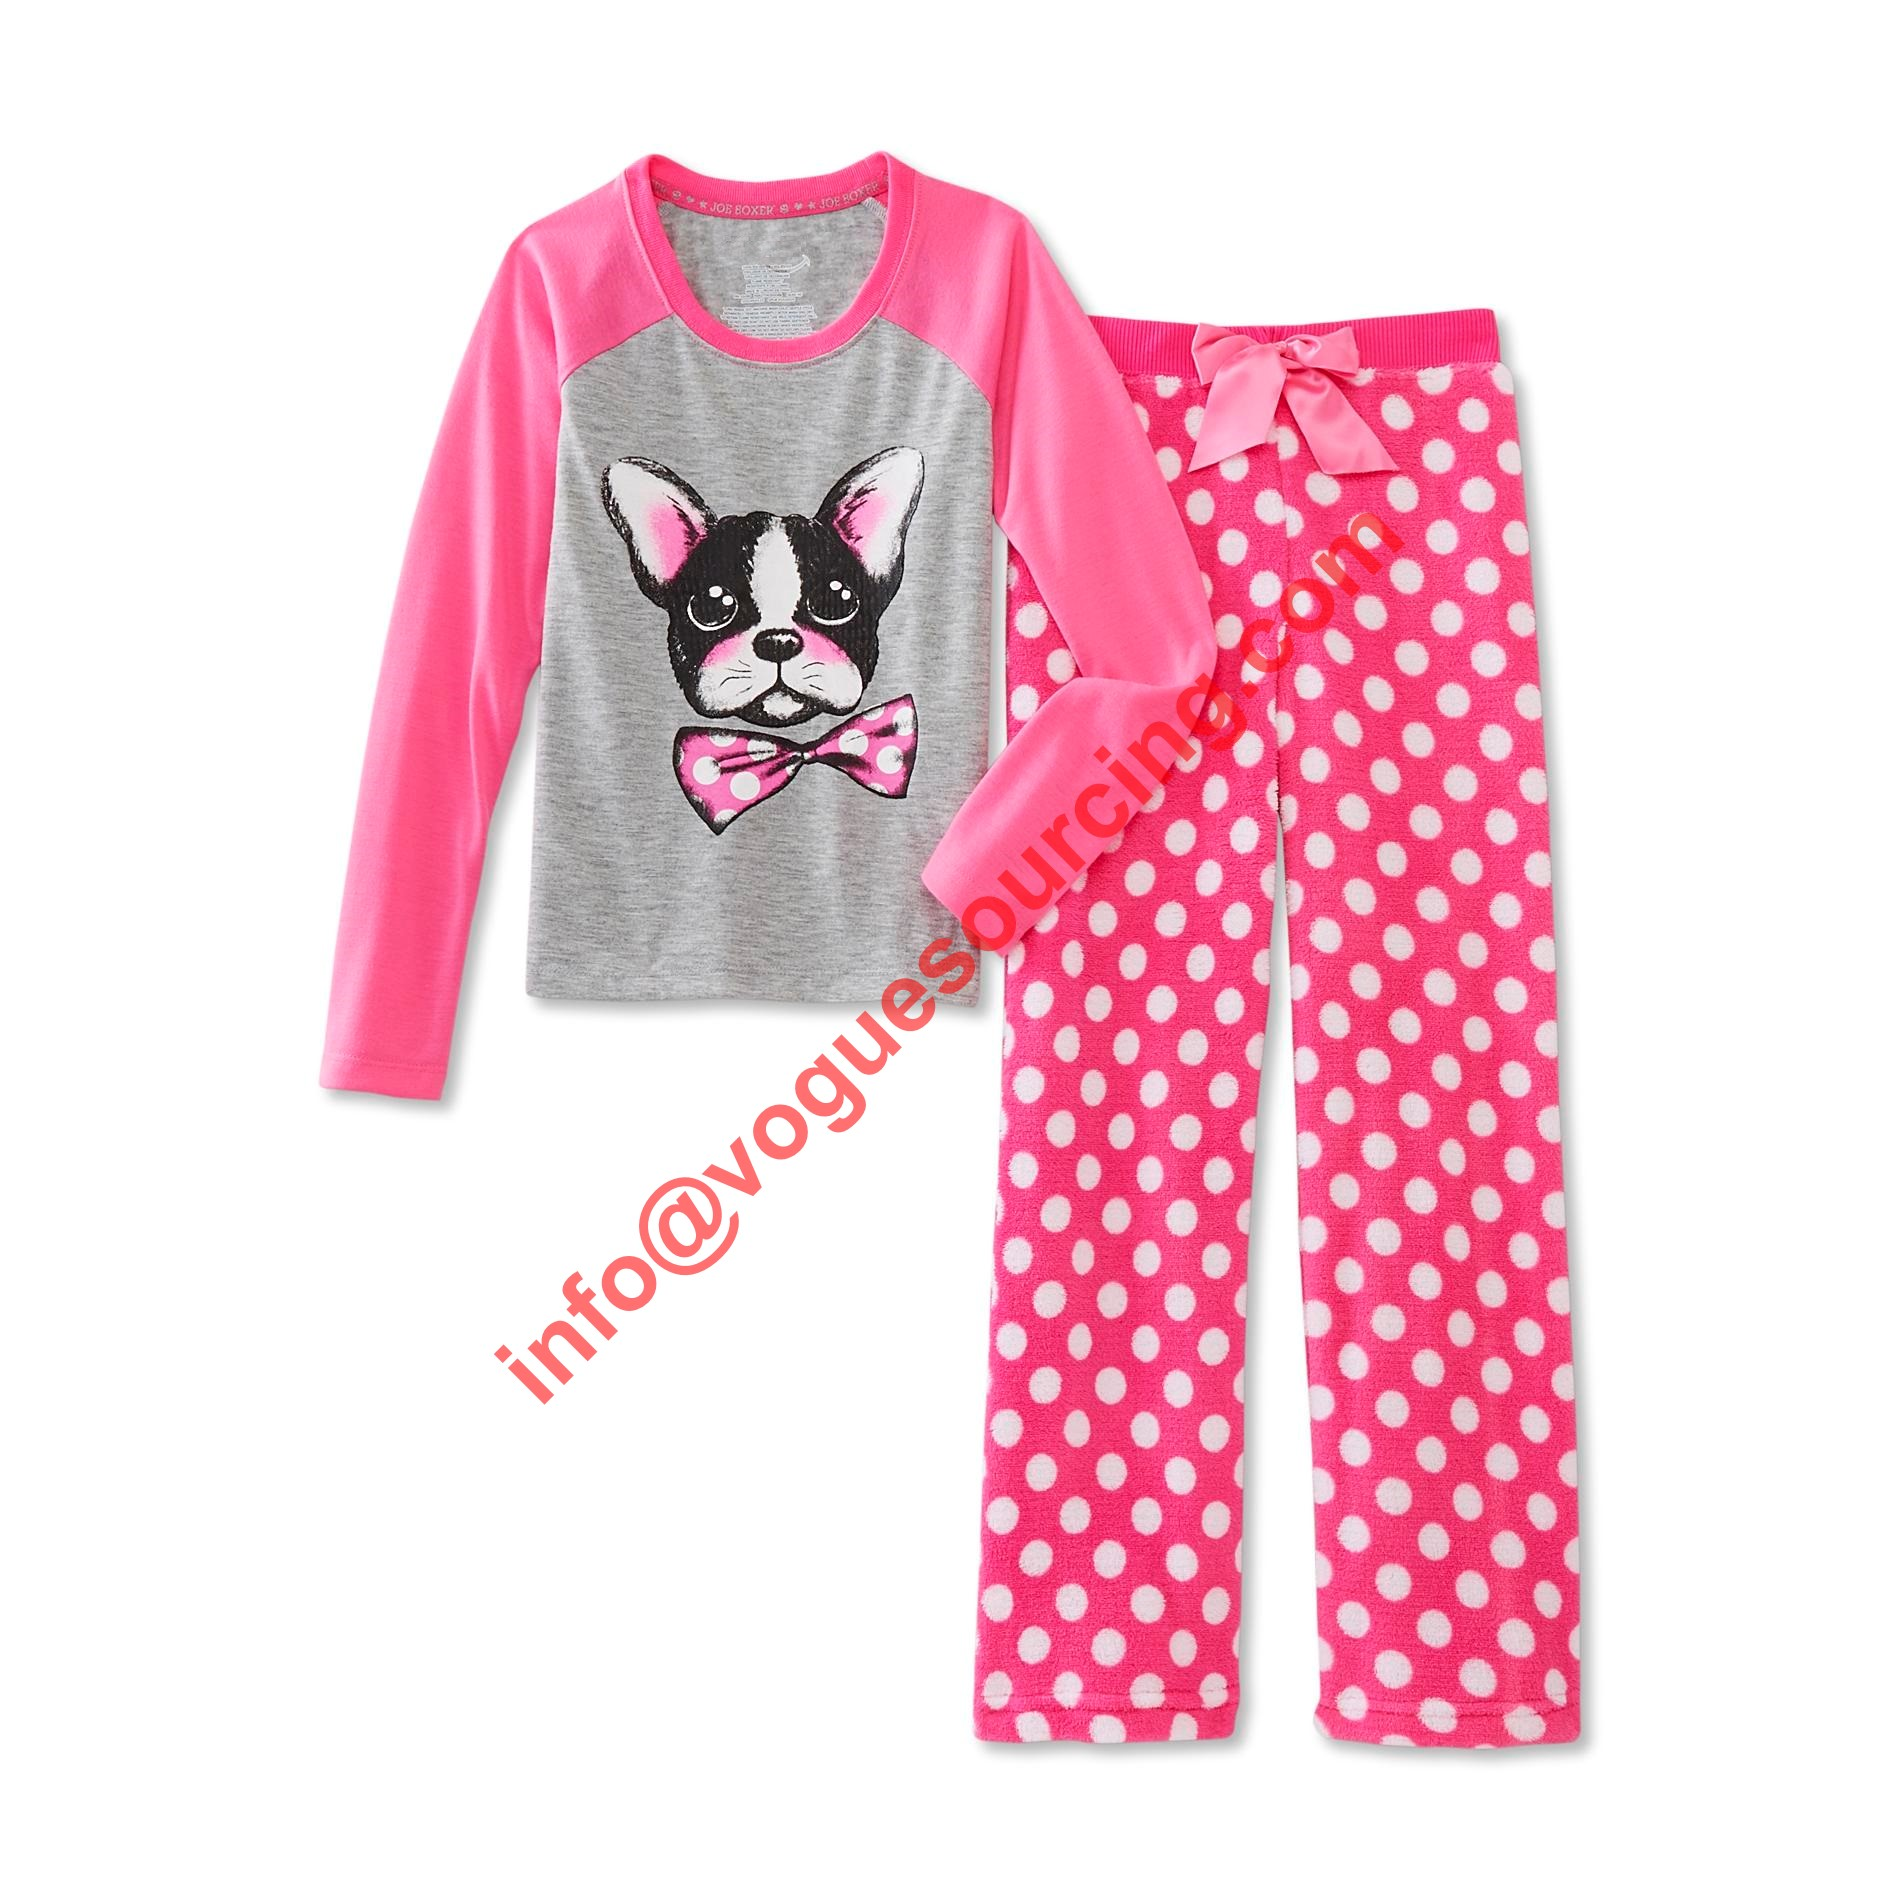 girls-printed-pajama-manufacturers-suppliers-exporters-voguesourcing-tirupur-india